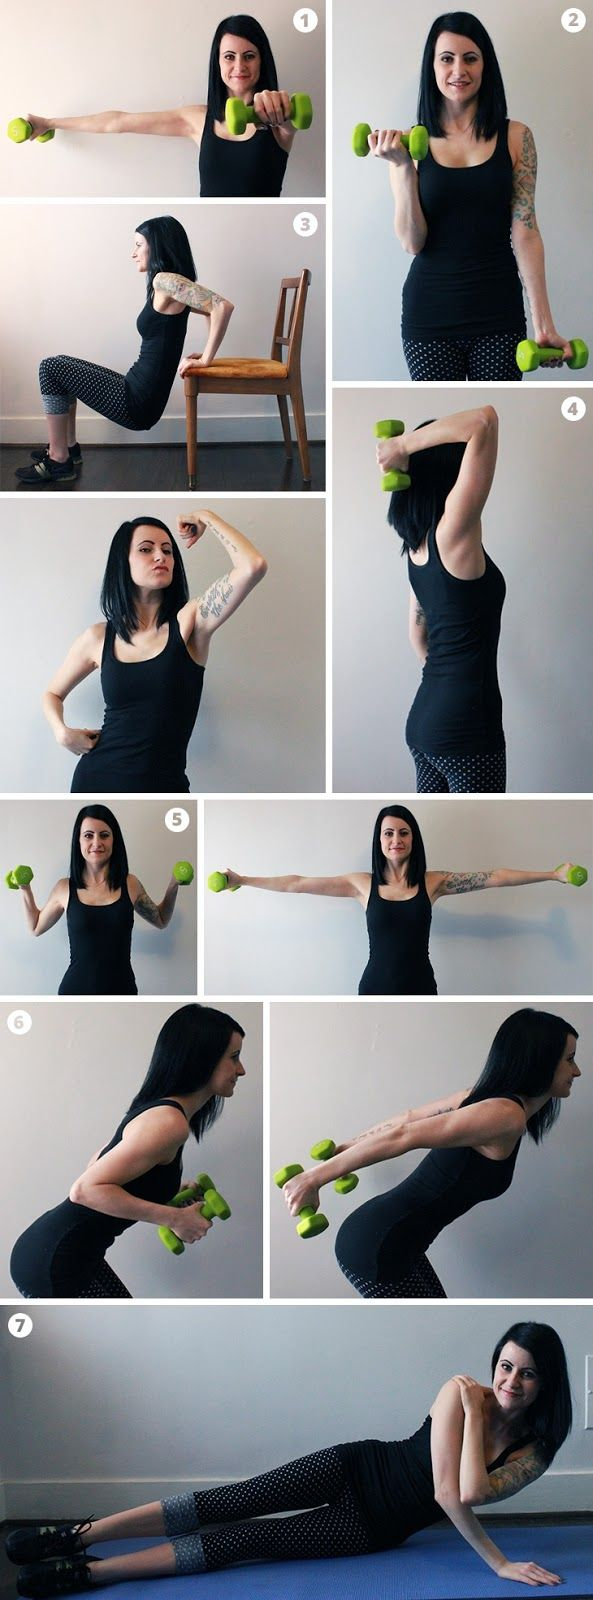 9 exercises for Aerial Arms